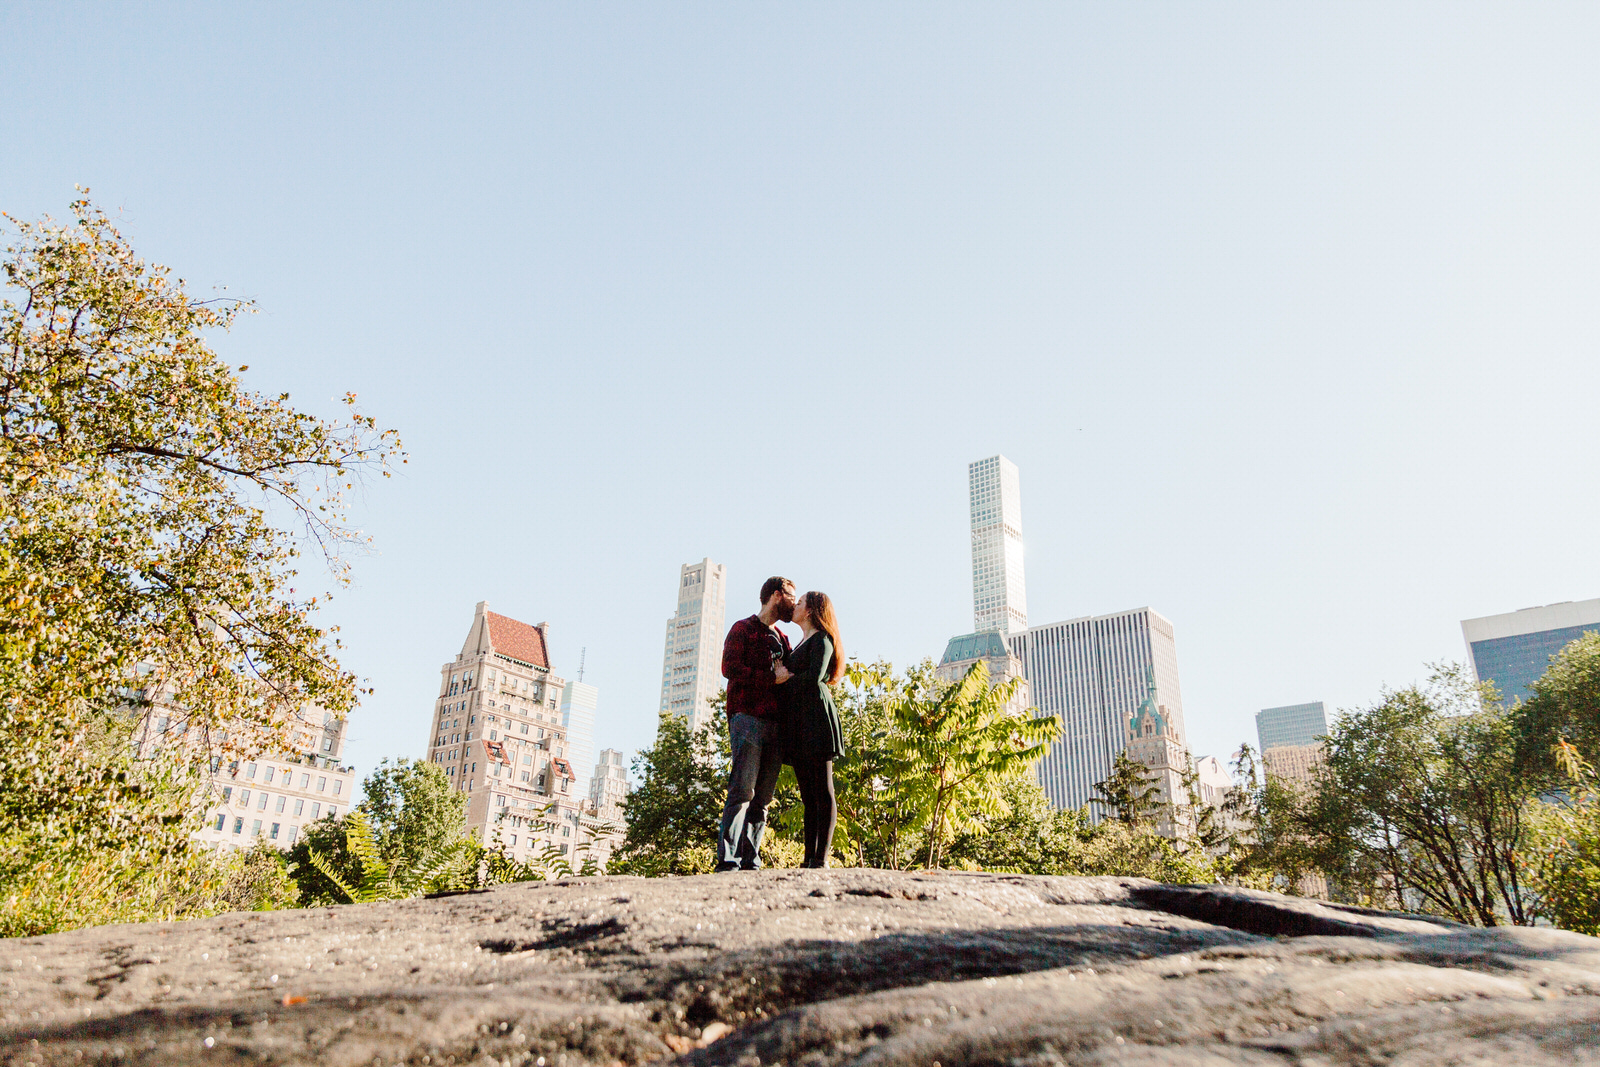 Central Park Engagement Session locations with skyline in the background